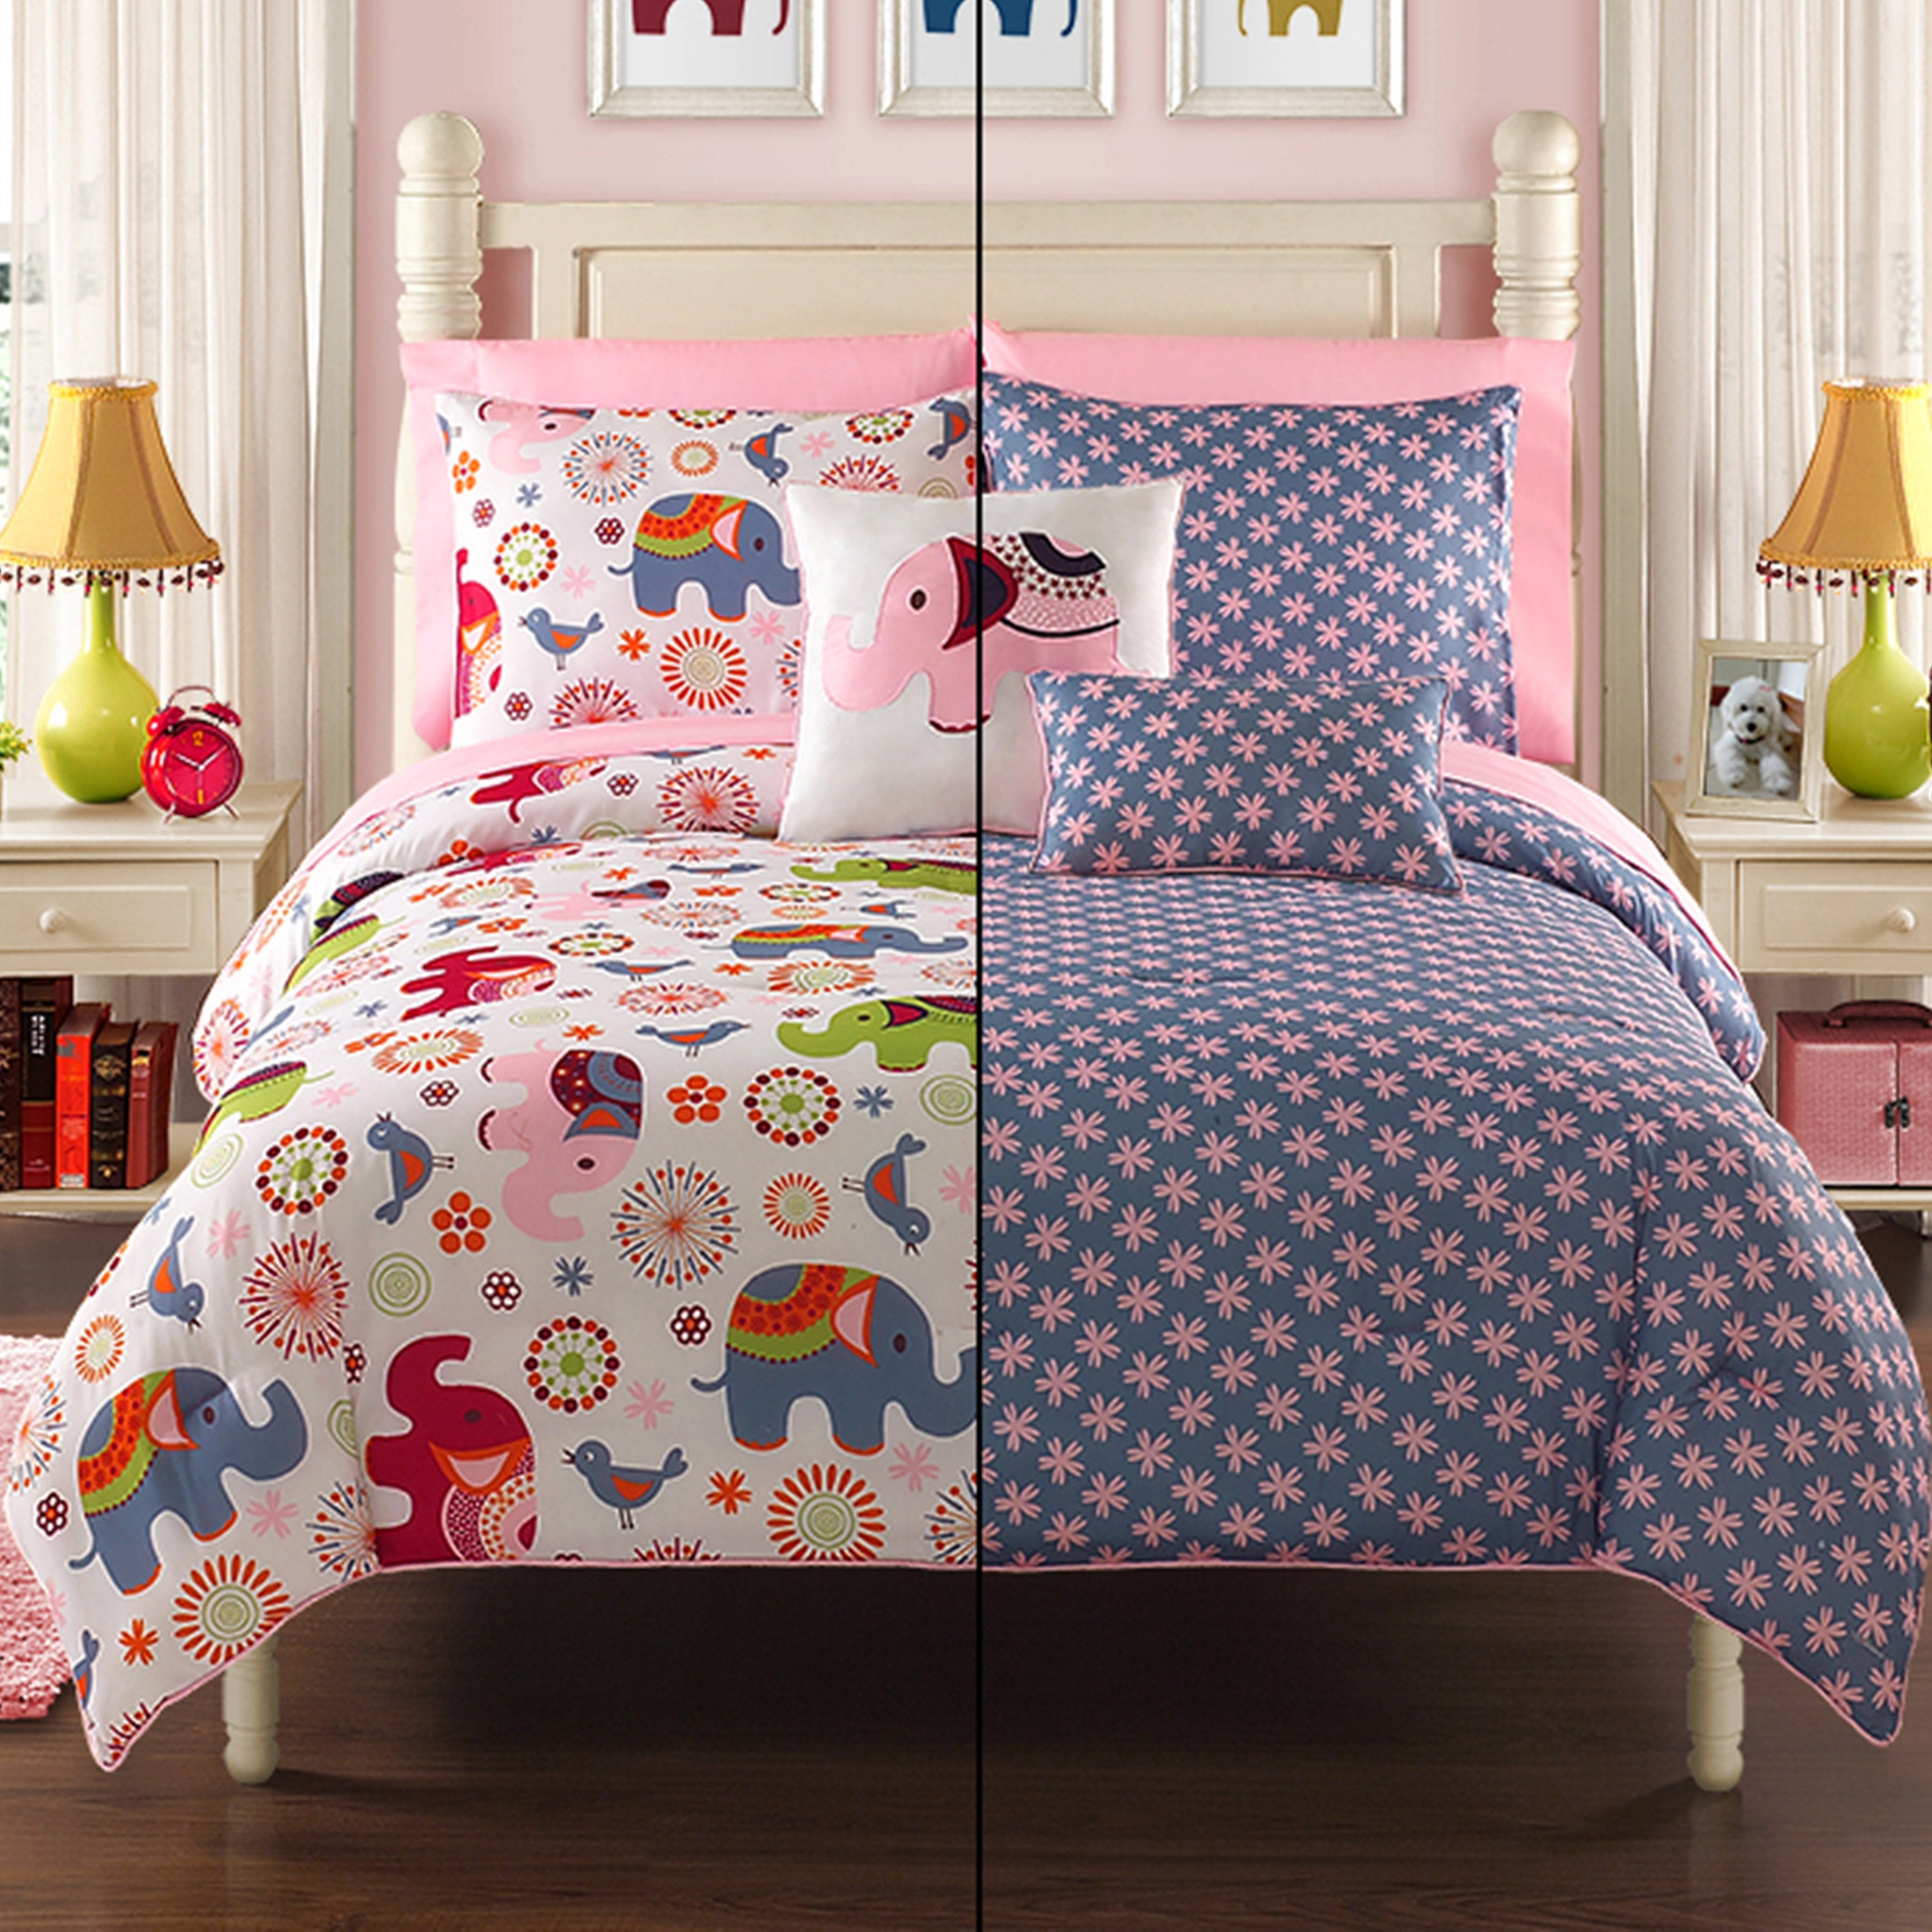 boy set duvet shhet sets size twin boys girl bedding covers kid girls baby daybed target children kmart kids of bed little full